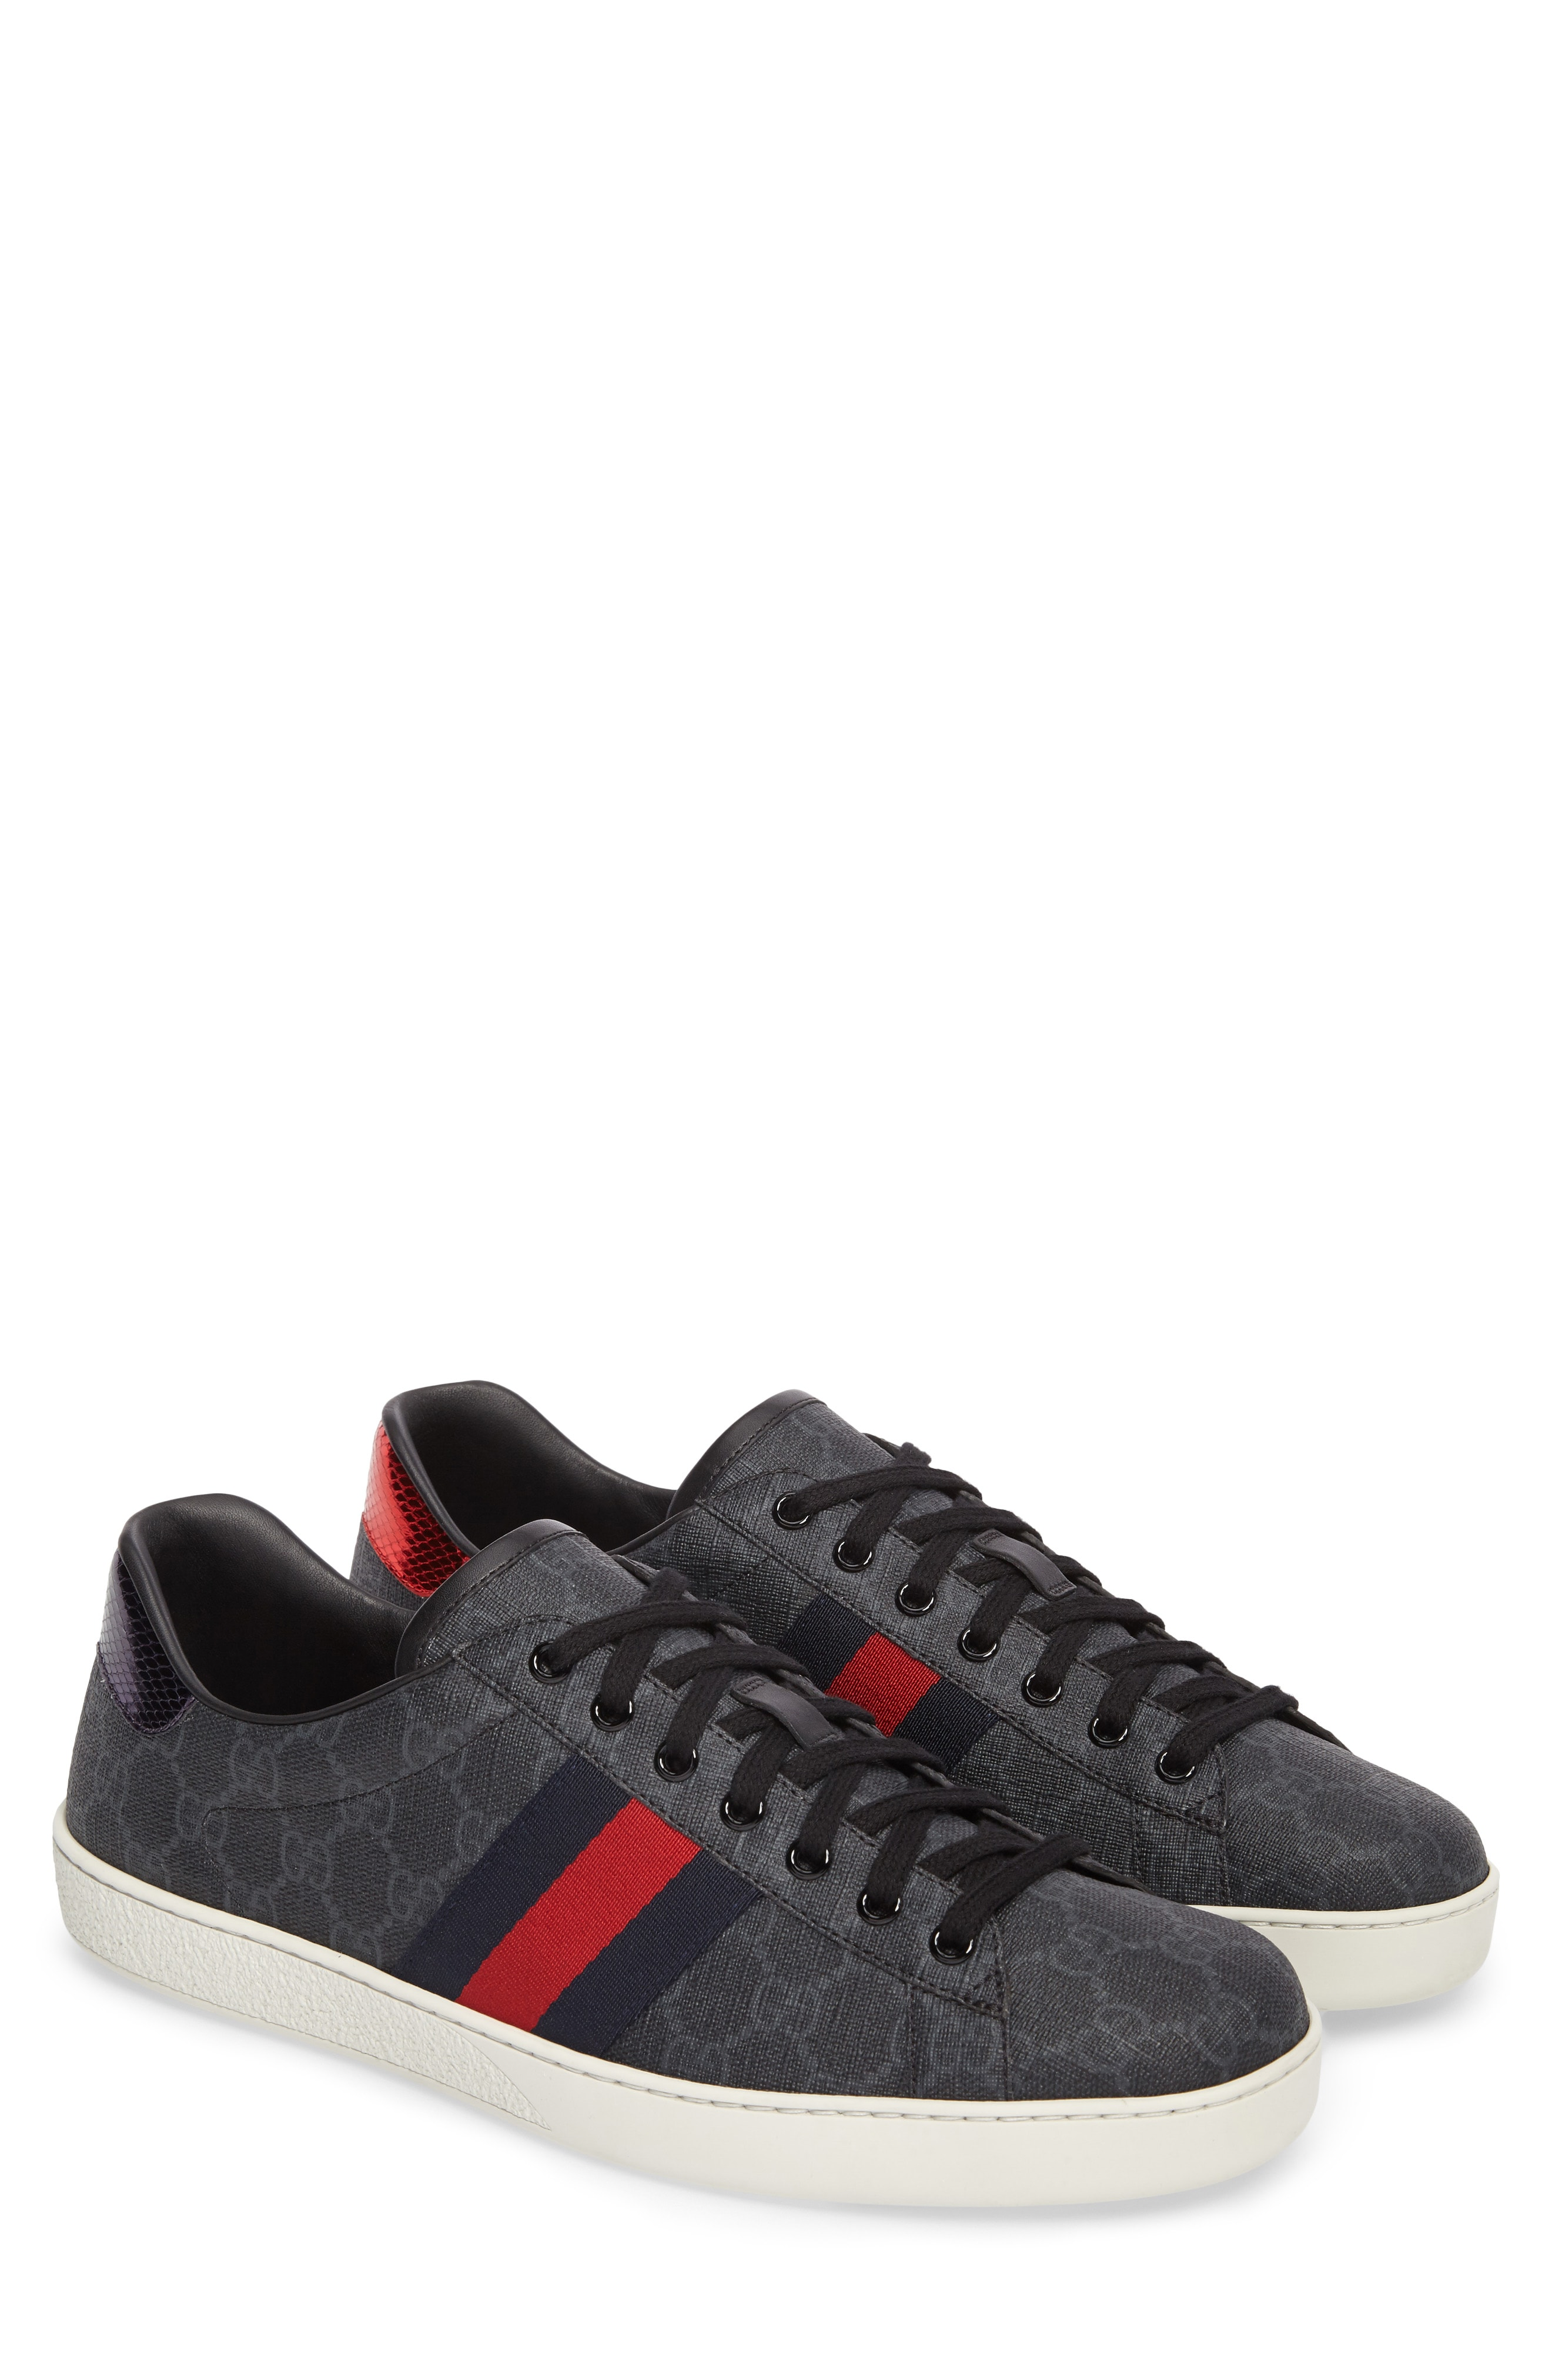 b50af05edc0 Men s Gucci New Ace Webbed Low Top Sneaker